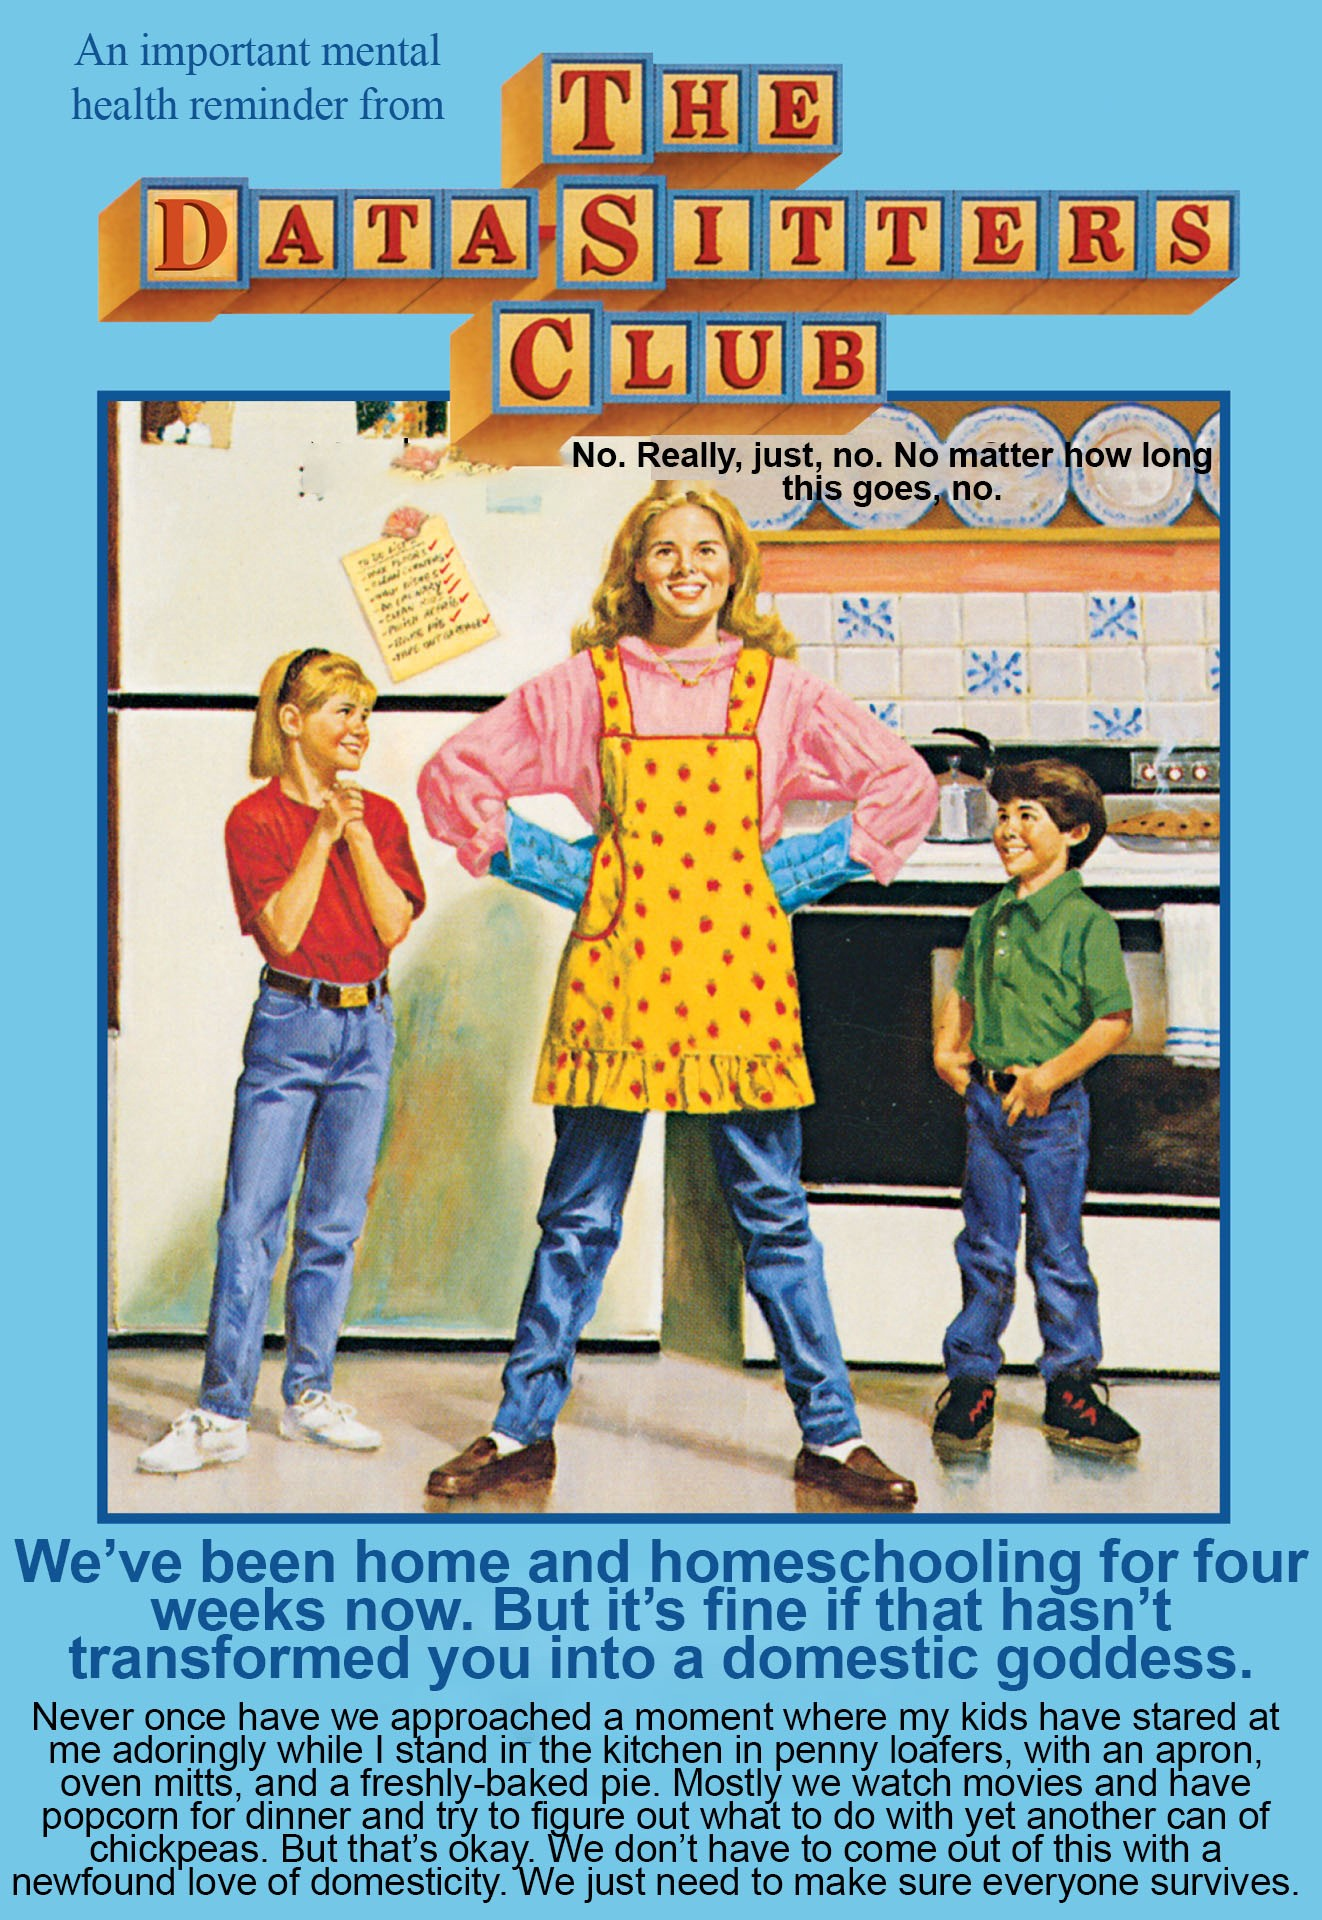 a cover of a babysitter's club book altered to say that it's fine if you're not a domestic goddess during quarantine.